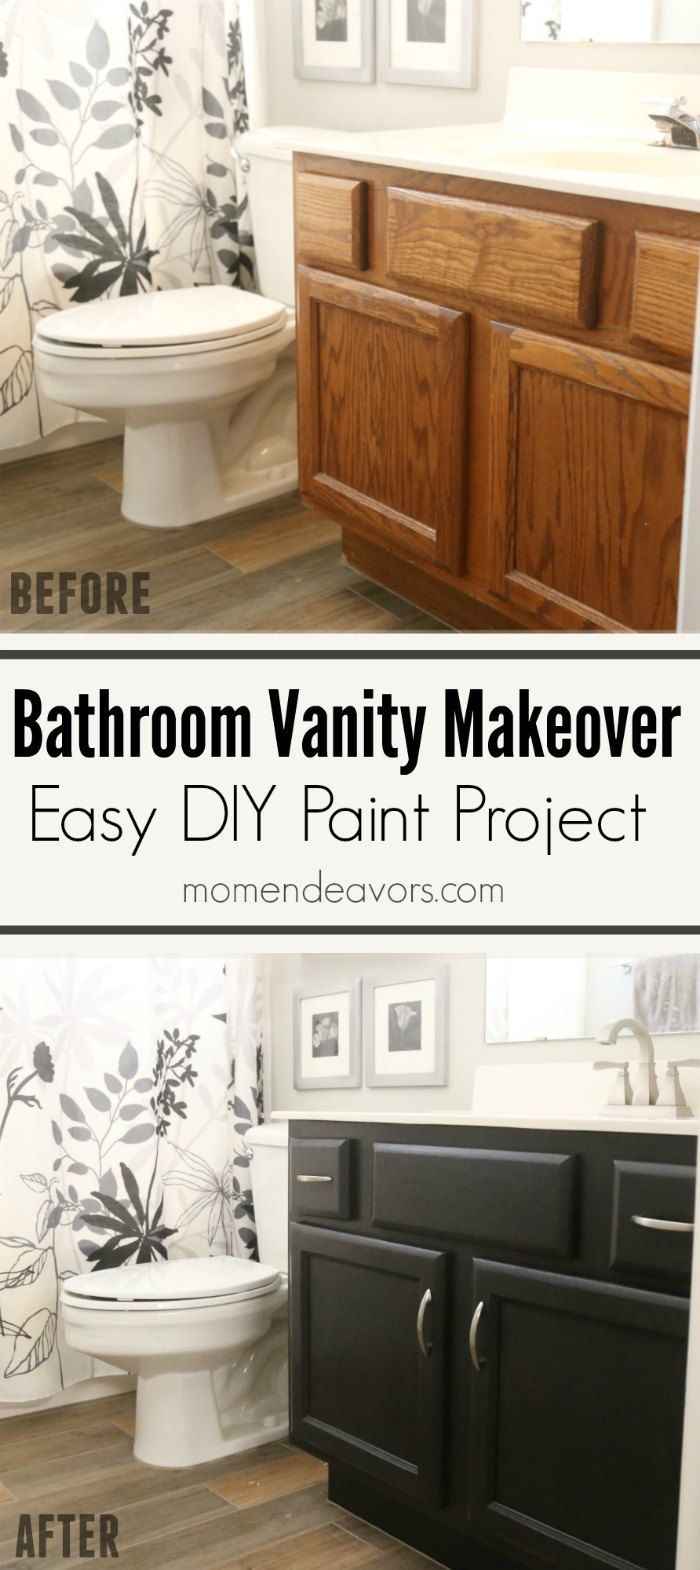 painting a bathroom vanity white pin by endeavors on diy home decor 23930